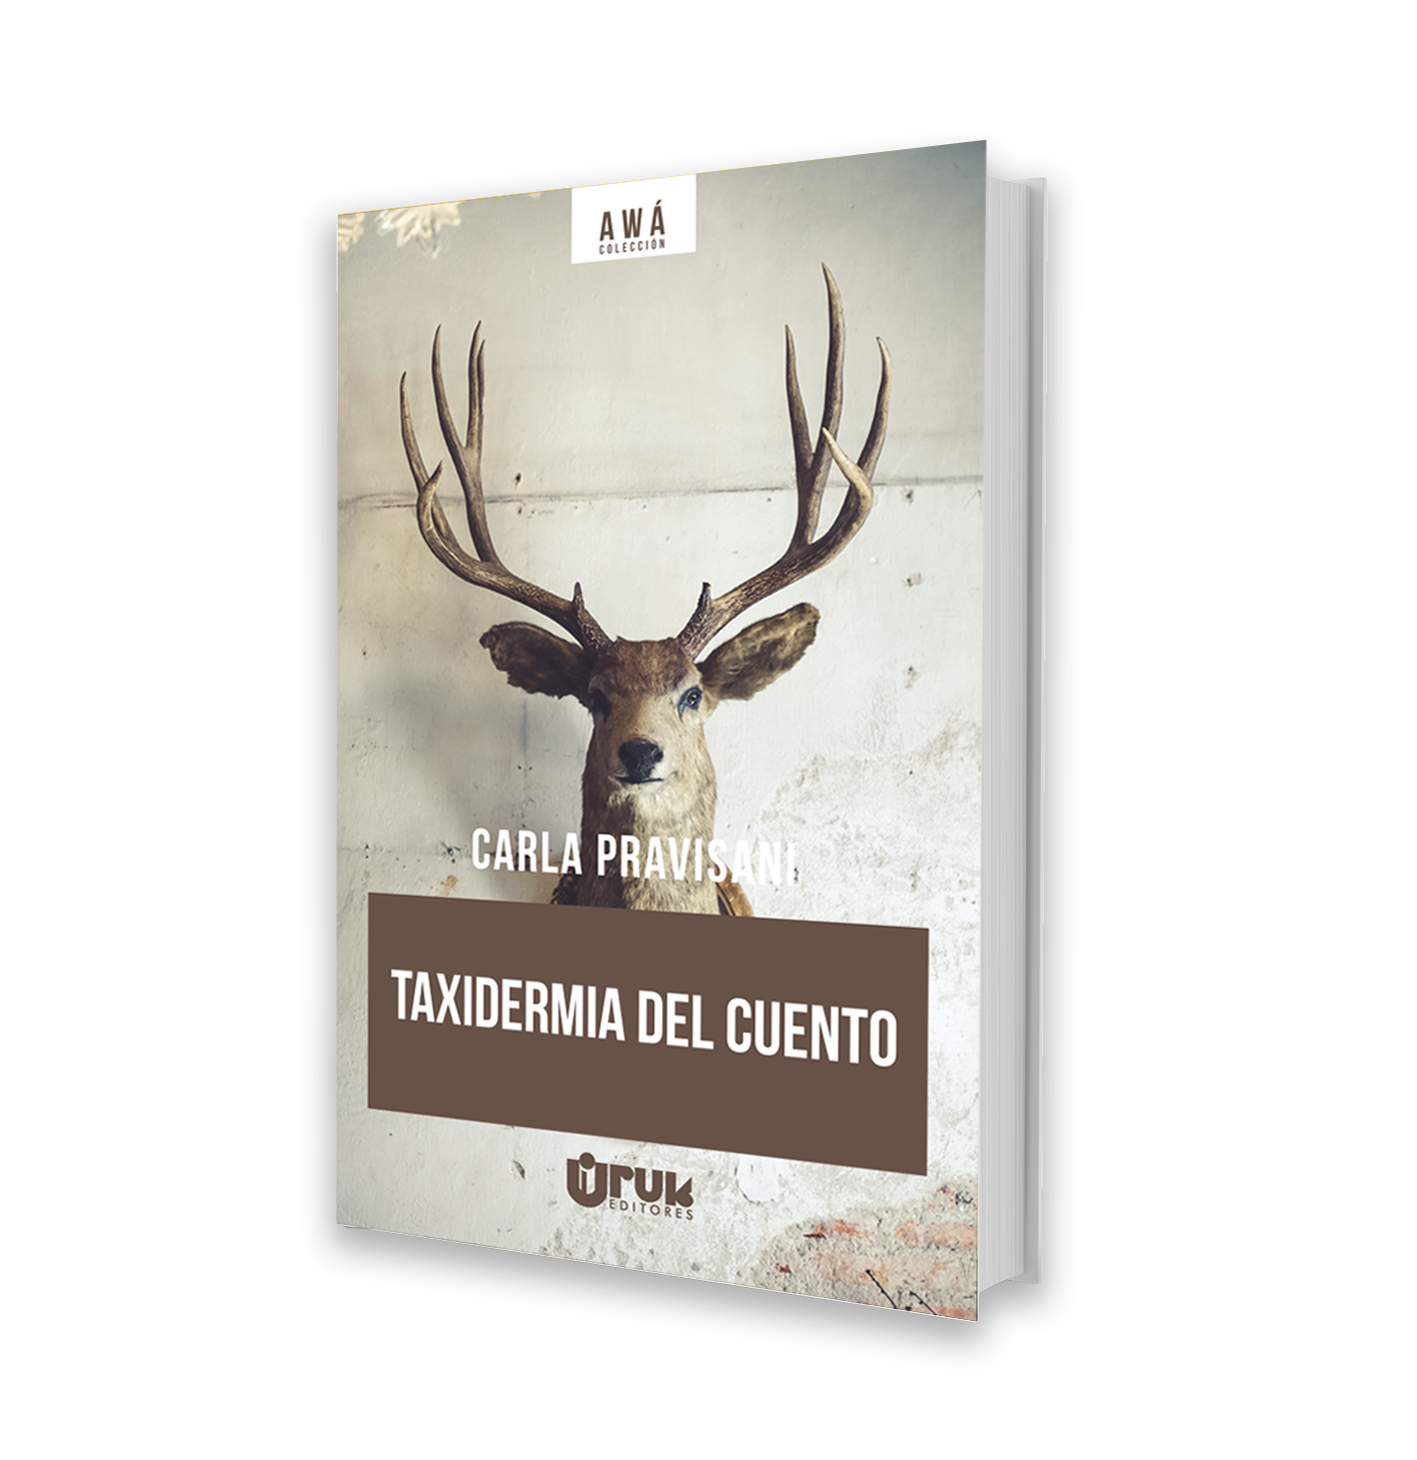 Taxidermia del cuento